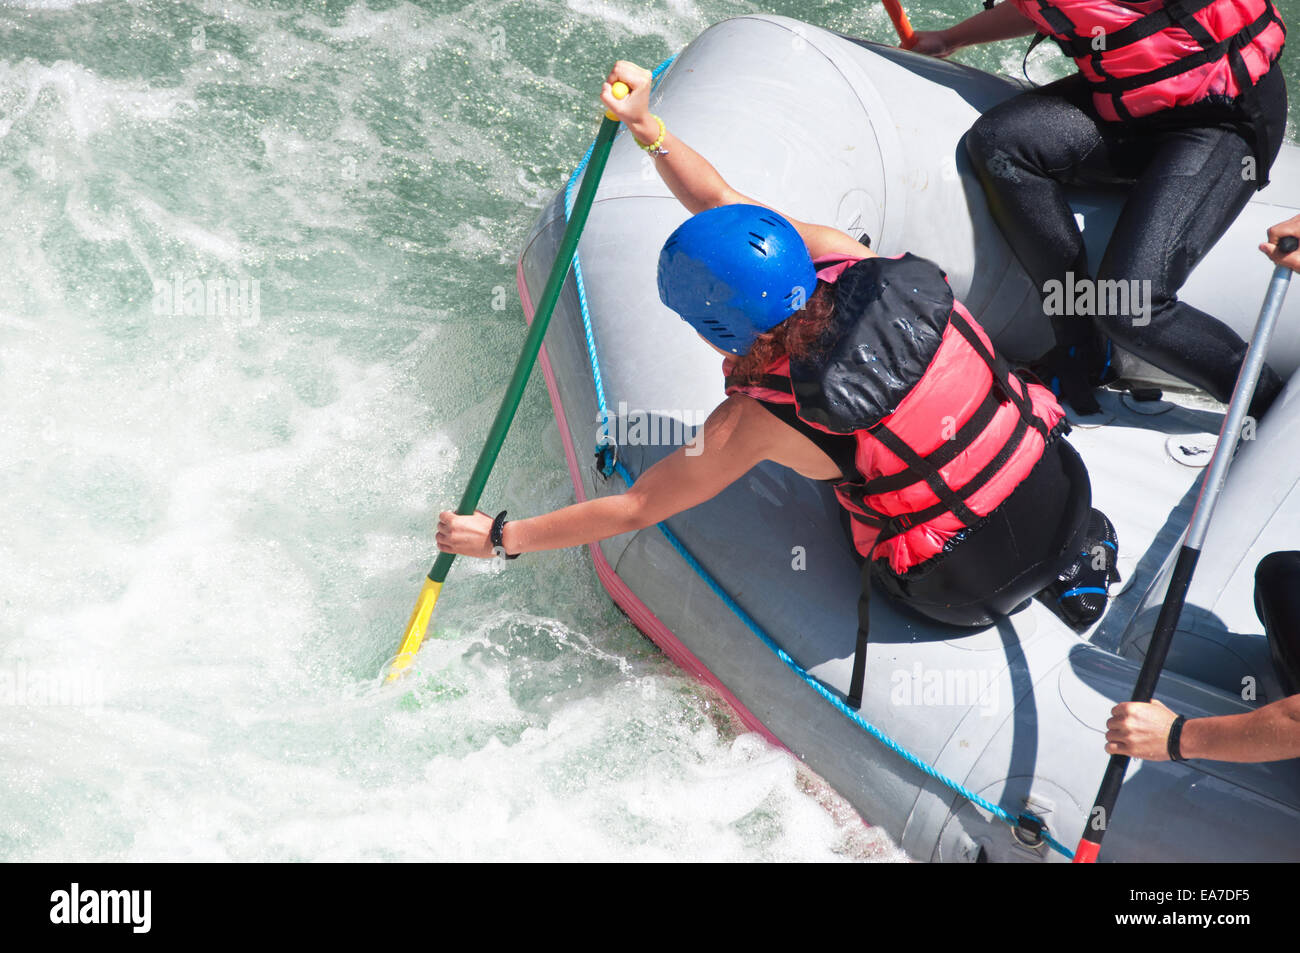 Rafting as extreme and fun sport - Stock Image